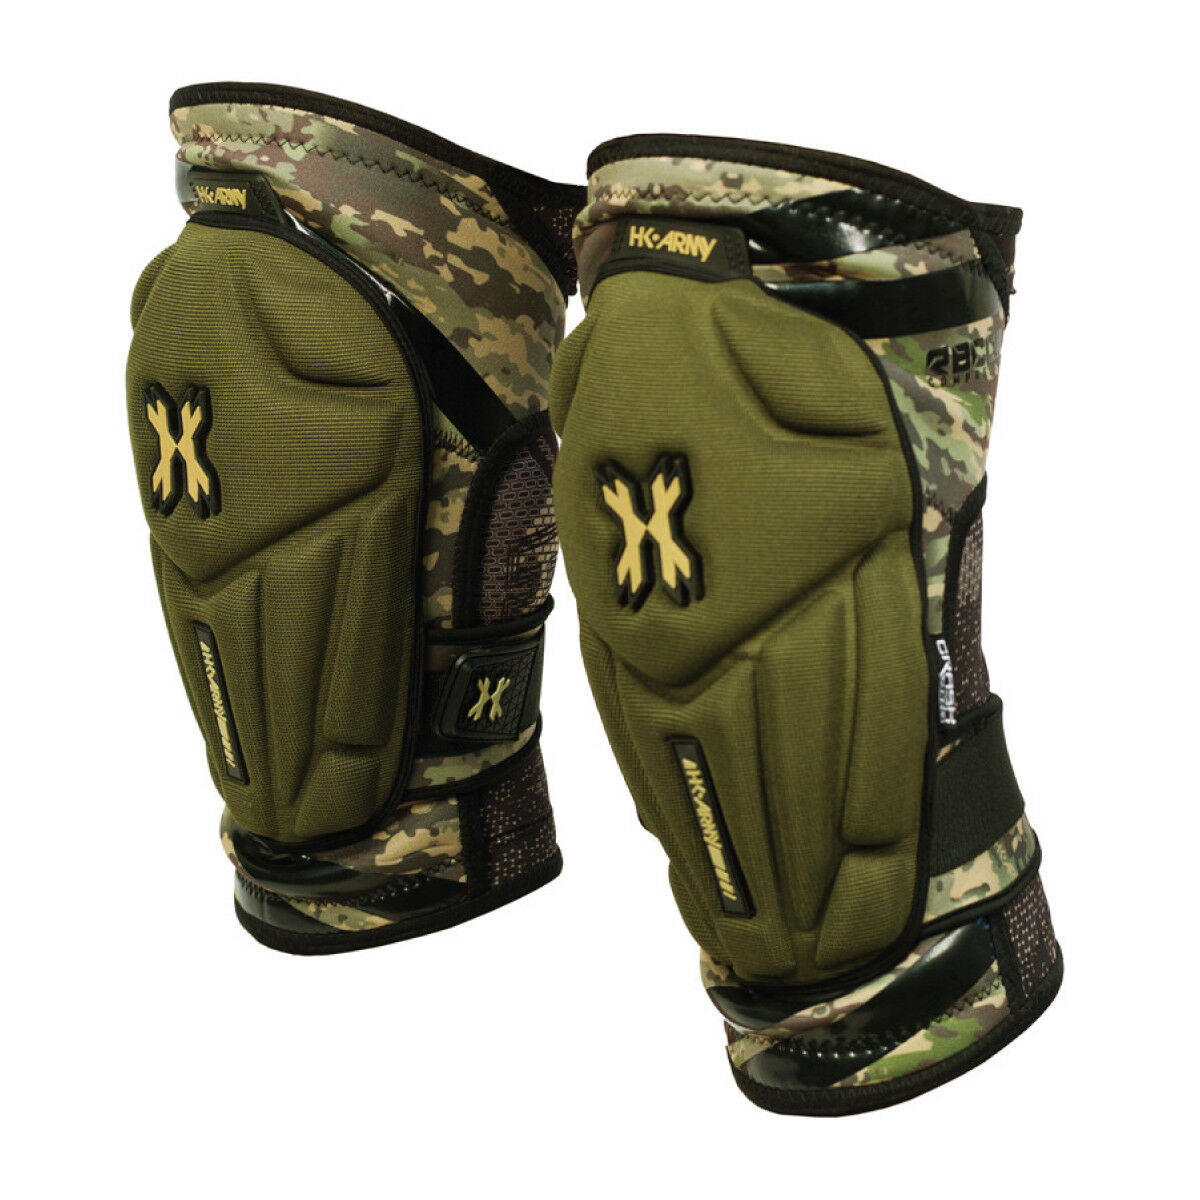 HK Army Crash Knee Pads - HSTL Camo - Small